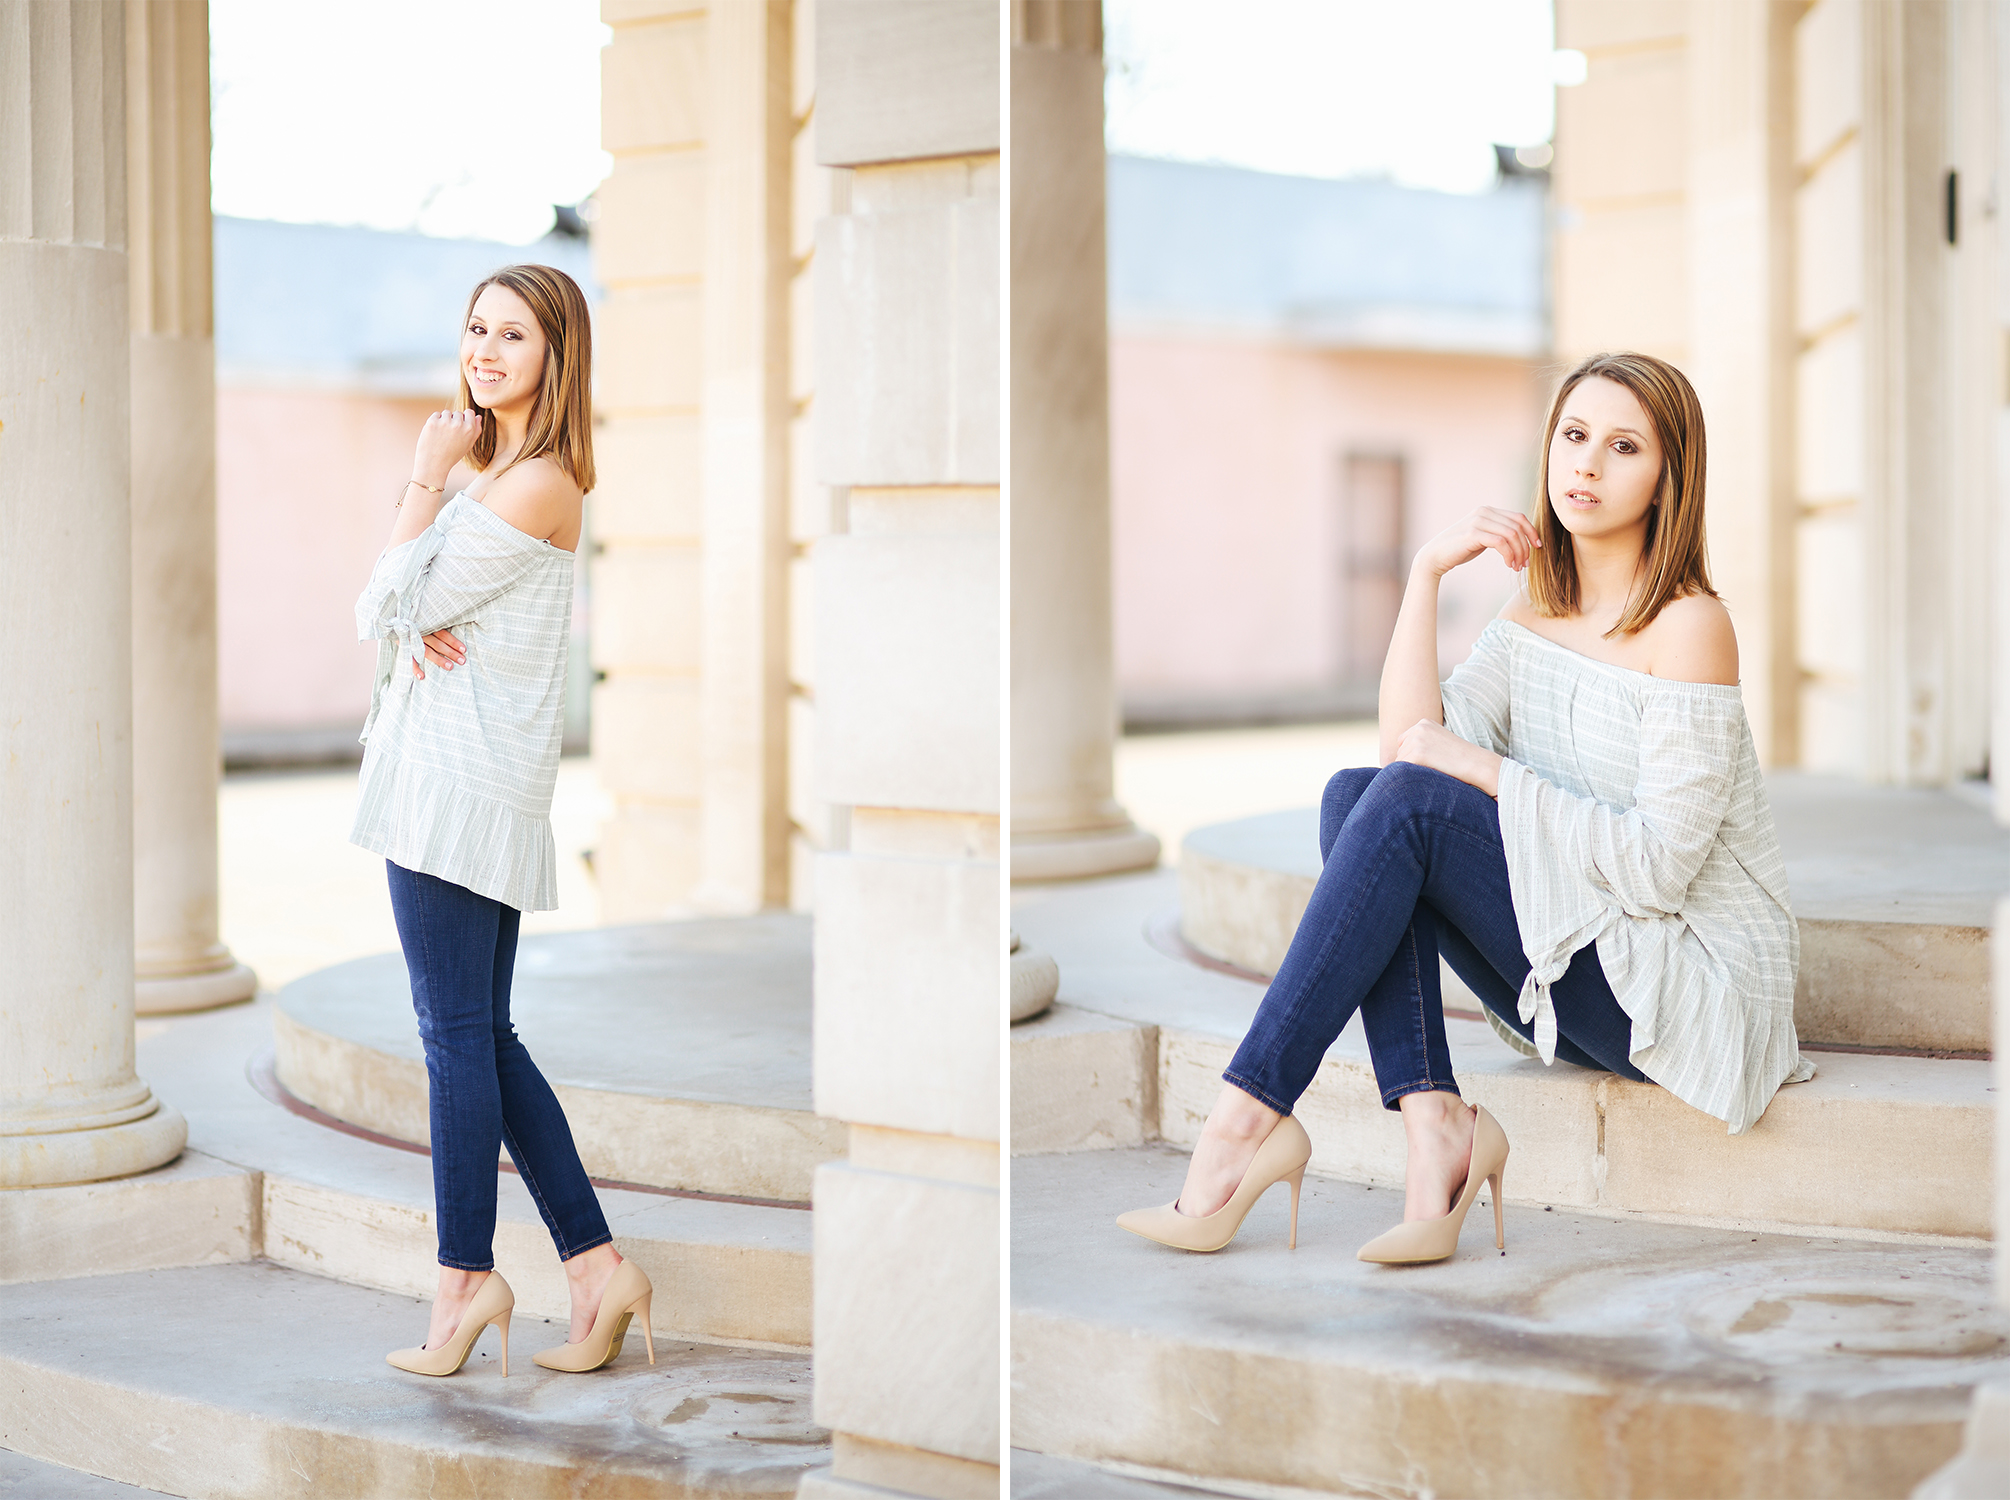 stevie said... - Emily was so much fun to work with, even if the weather wasn't too fun to be in! She definitely calmed my nerves just because of how easygoing her and her work was! Highly recommend!